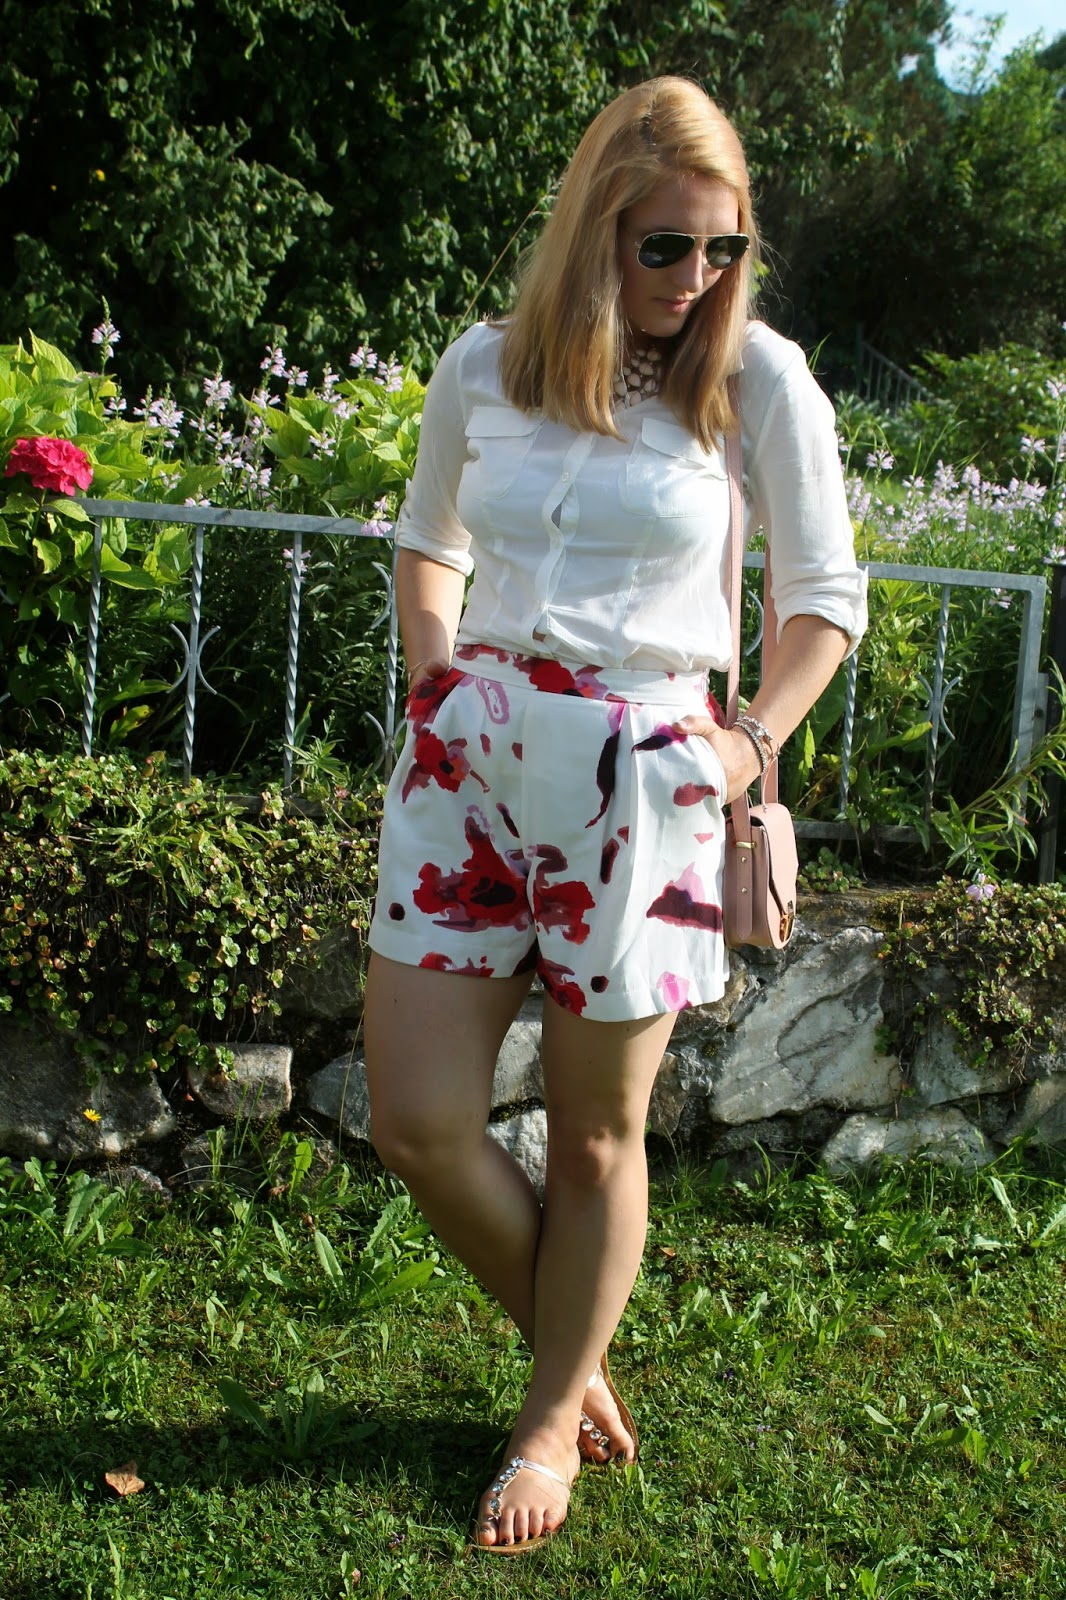 Fashionblogger Austria / Österreich / Deutsch / German / Kärnten / Carinthia / Klagenfurt / Köttmannsdorf / Spring Look / Classy / Edgy / Summer / Summer Style 2014 / Summer Look / Fashionista Look /   / Summer Dress / Flower Shorts / Oasap Shorts / Zara Shorts Dupe / Tally Weijl Flats / White Blouse / Ray Ban Aviator Sunglasses / Streetstyle / Pastell Colors Looks / Candy Colors /